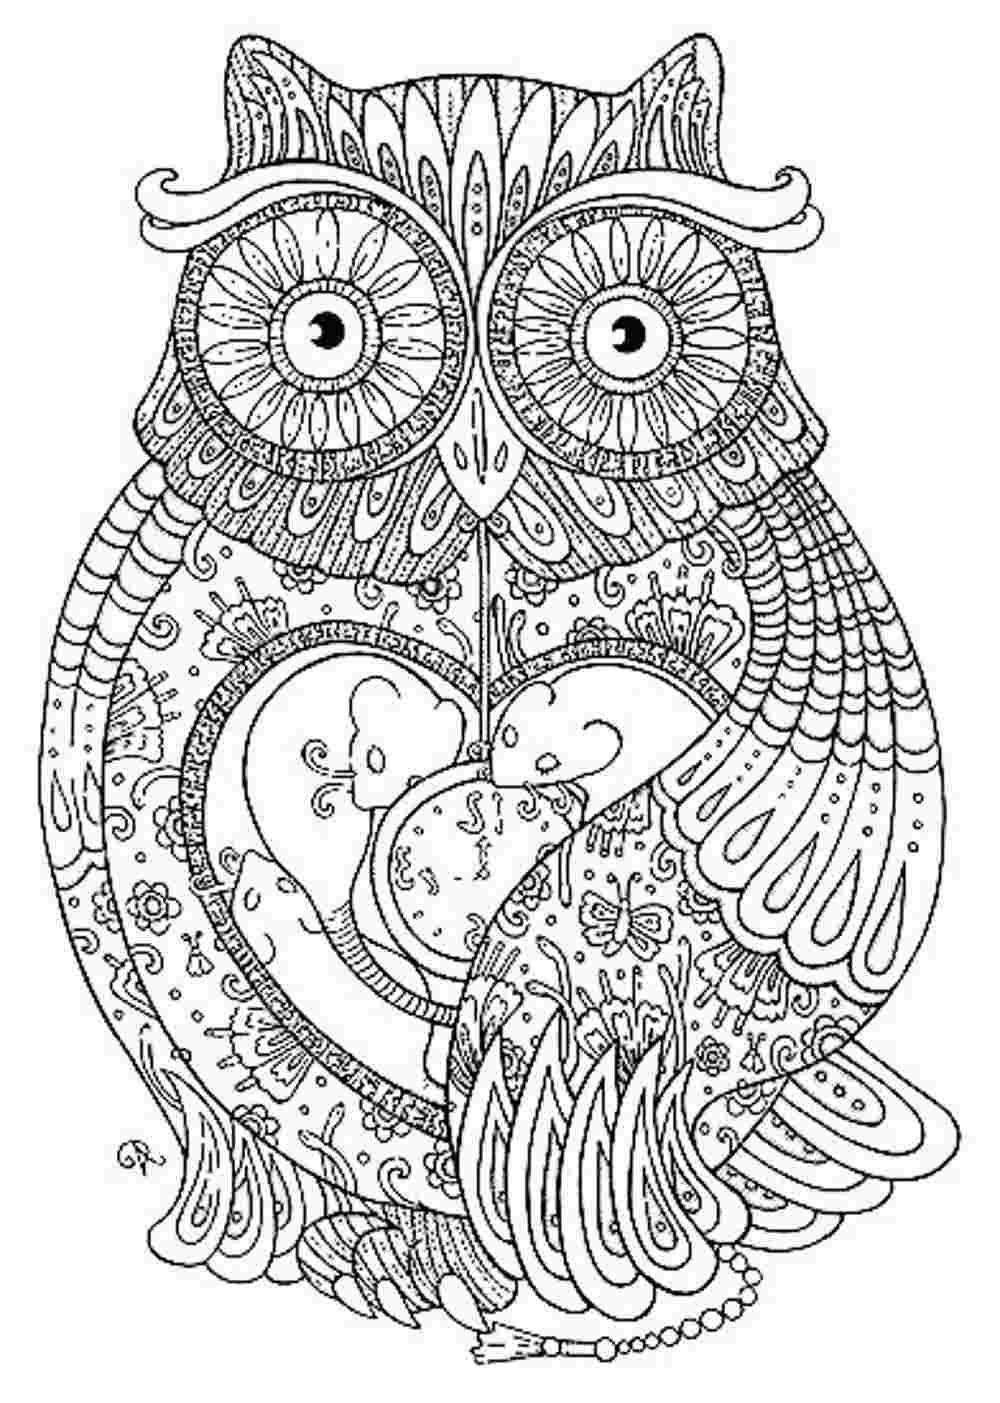 Animal mandala coloring pages to download and print for free ...